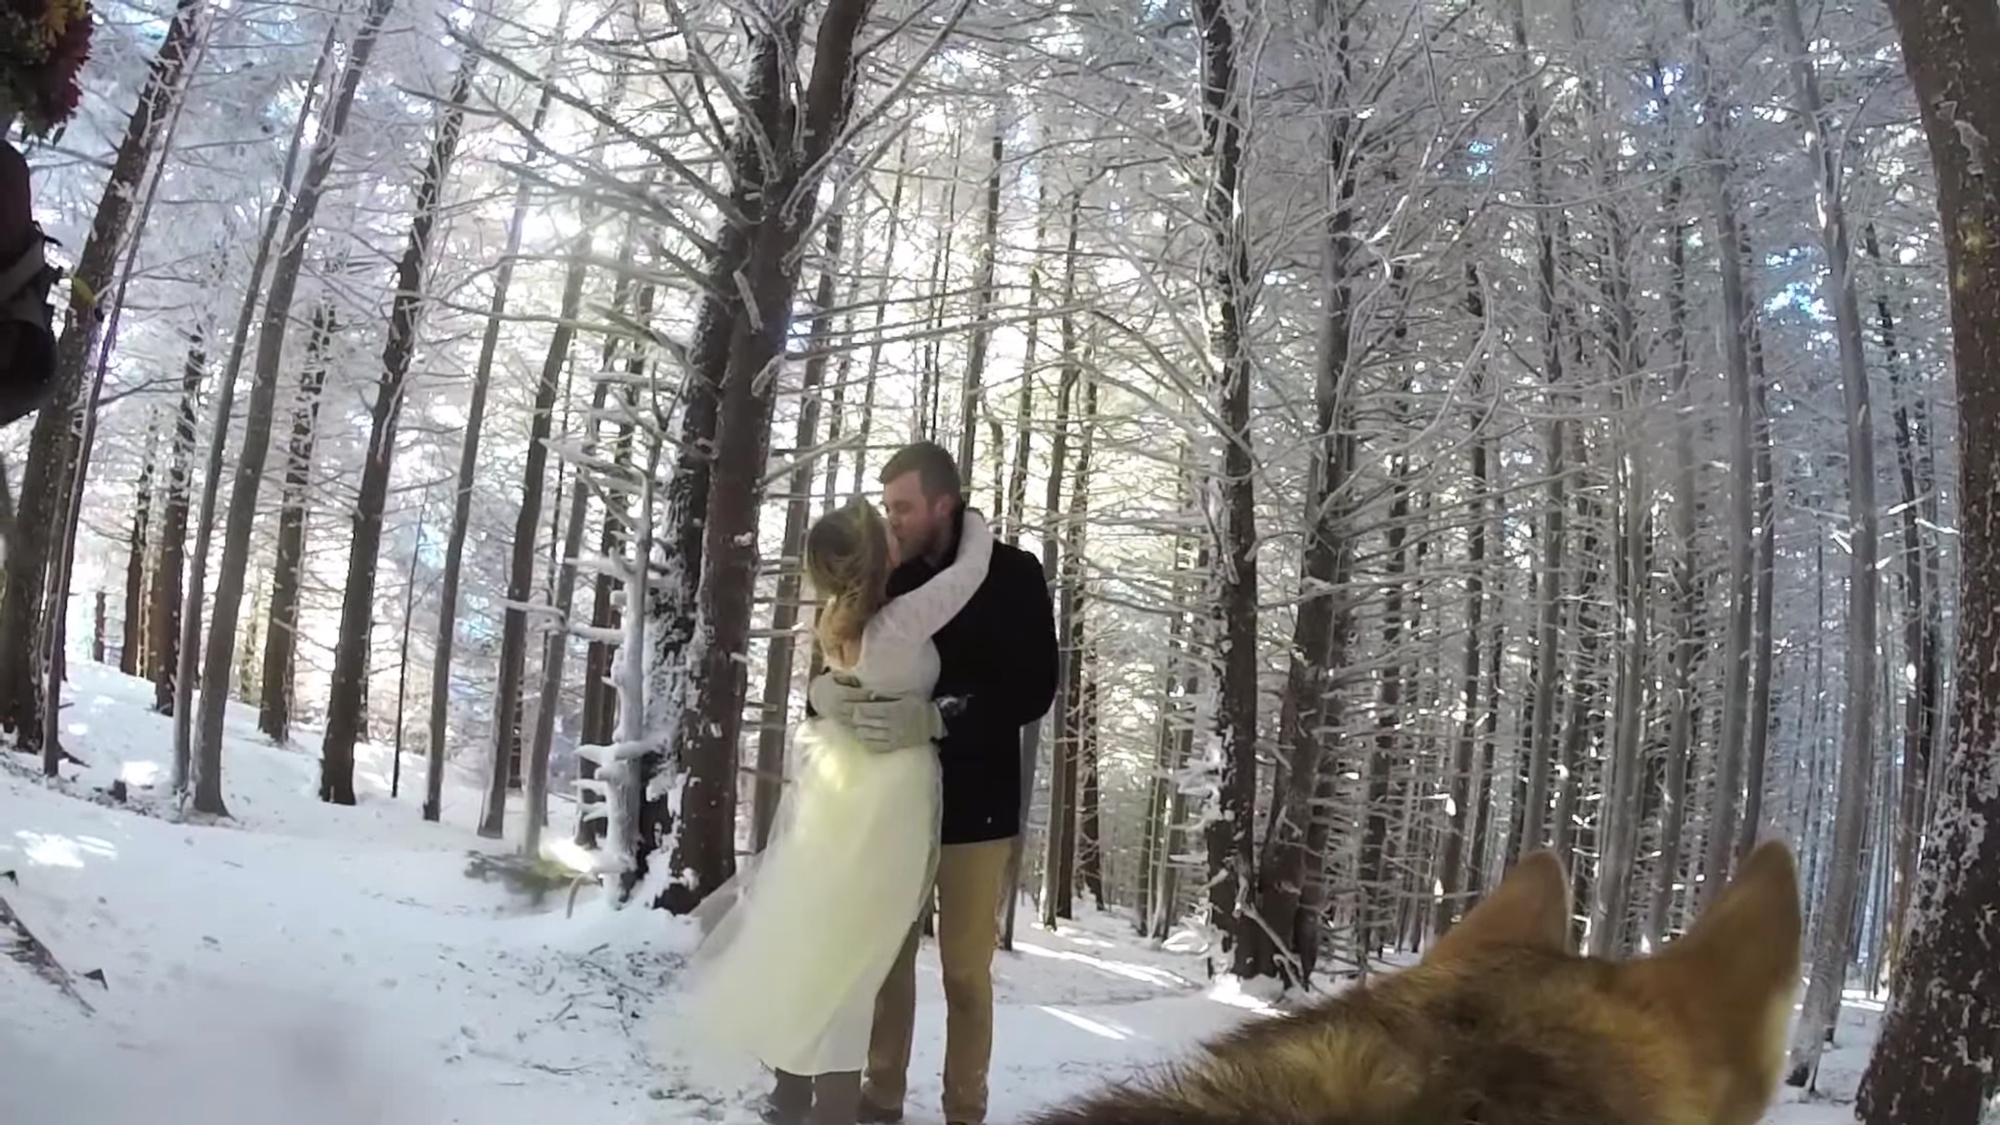 A Dog With GoPro Made The Most Amazing Wedding Video Quartz